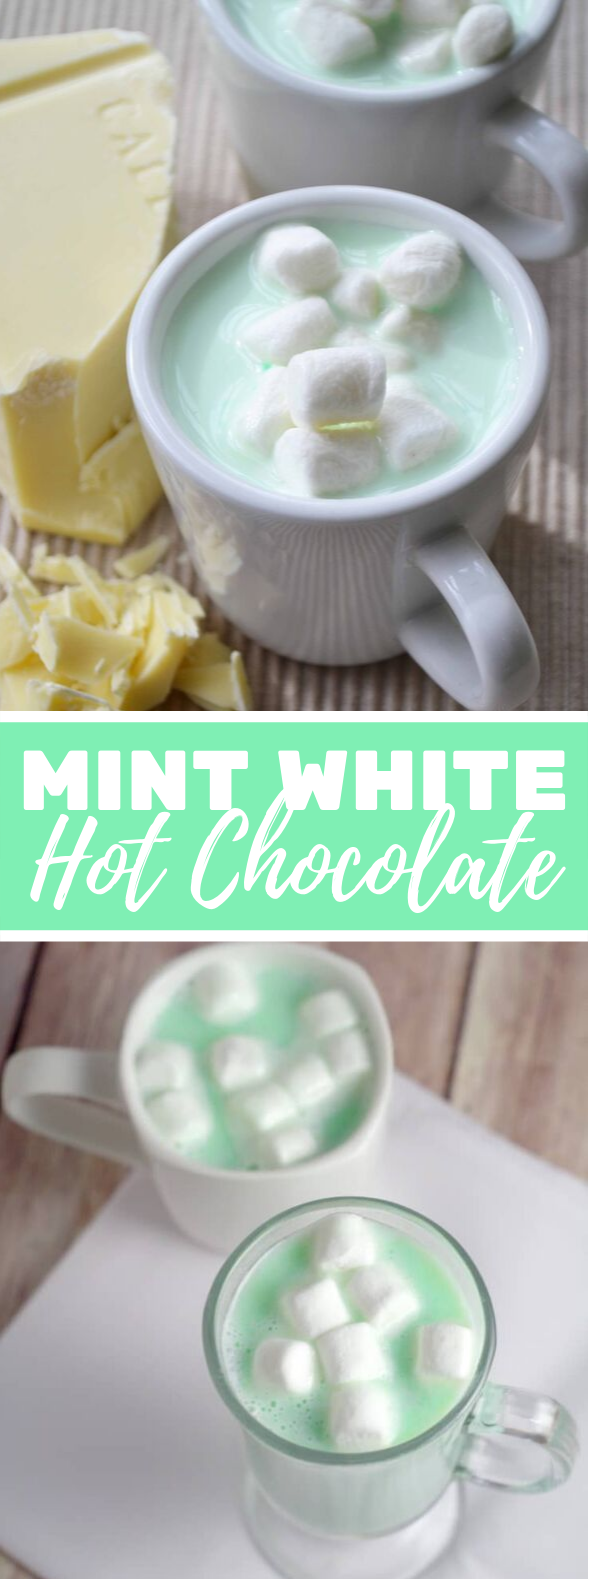 Mint White Hot Chocolate #drinks #homemade